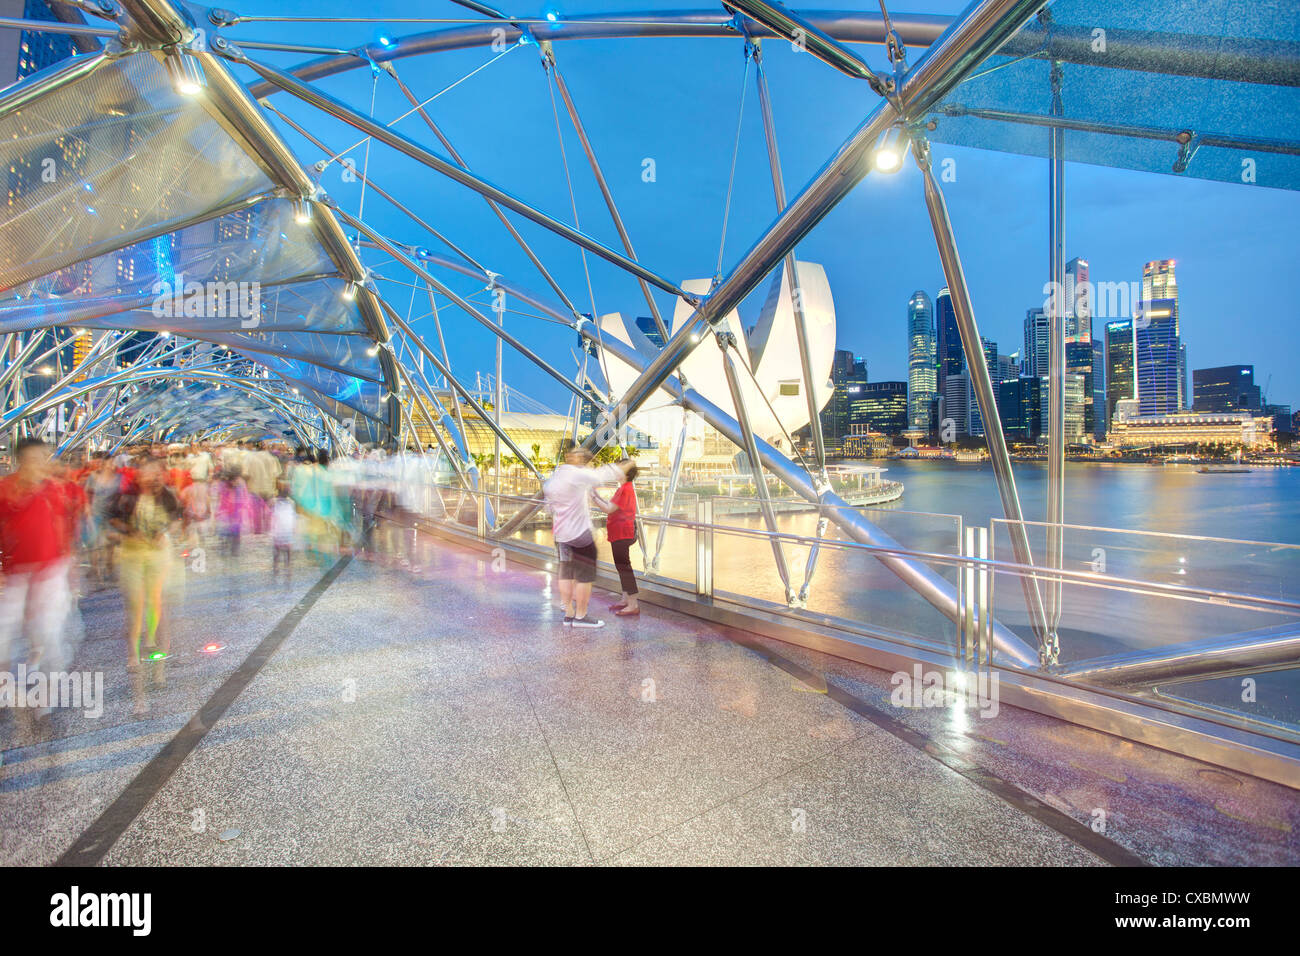 The Helix Bridge and Marina Bay Sands, Marina Bay, Singapore, Southeast Asia, Asia - Stock Image